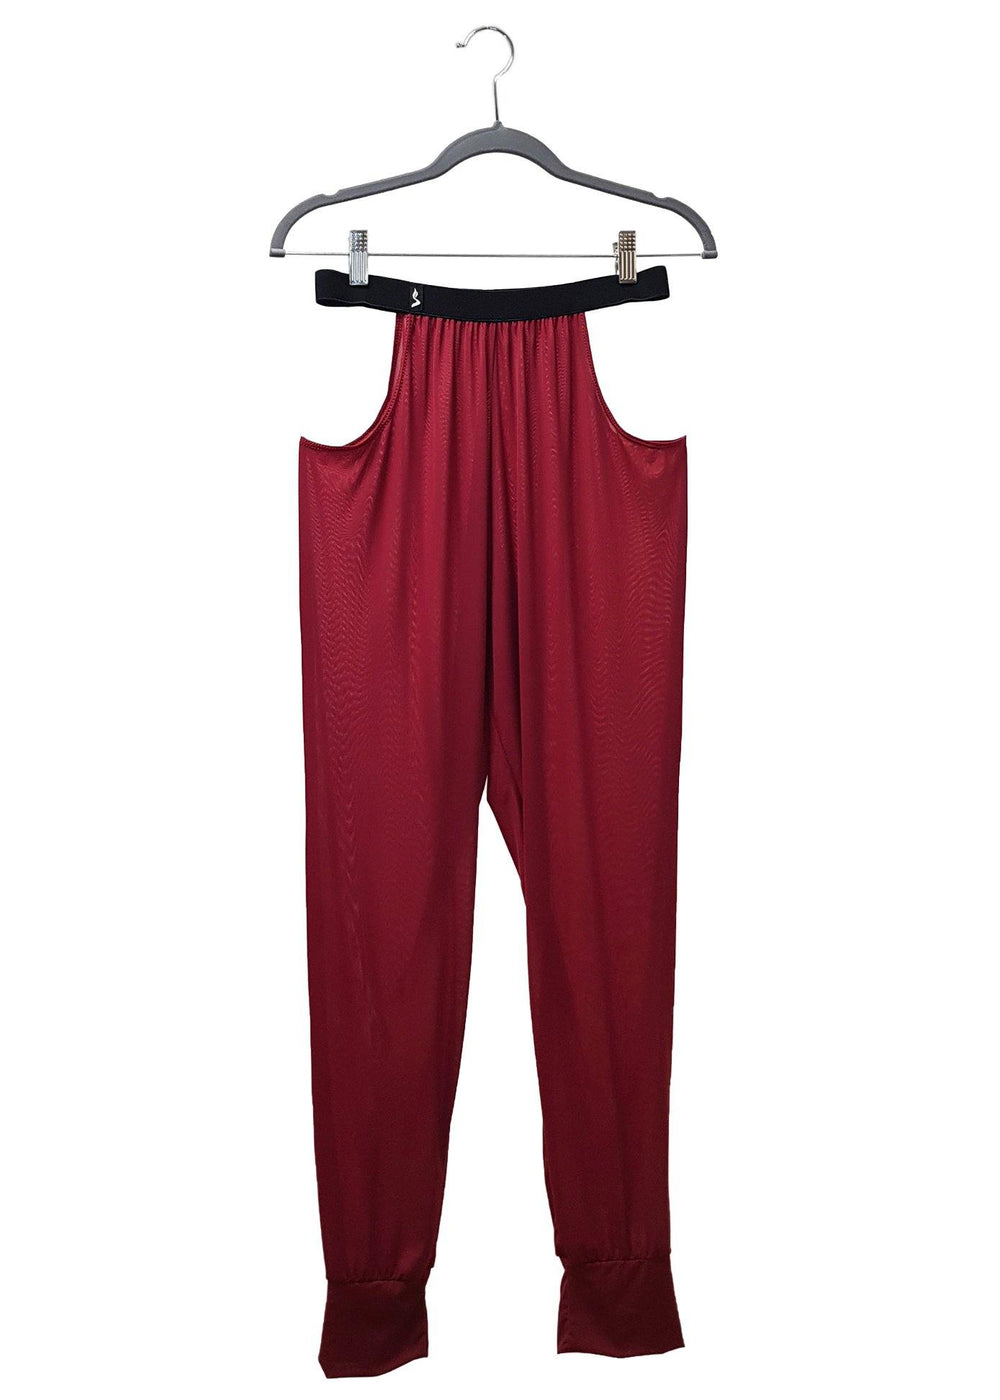 Ruby Red Jasmine Joggers Unisex - Sway